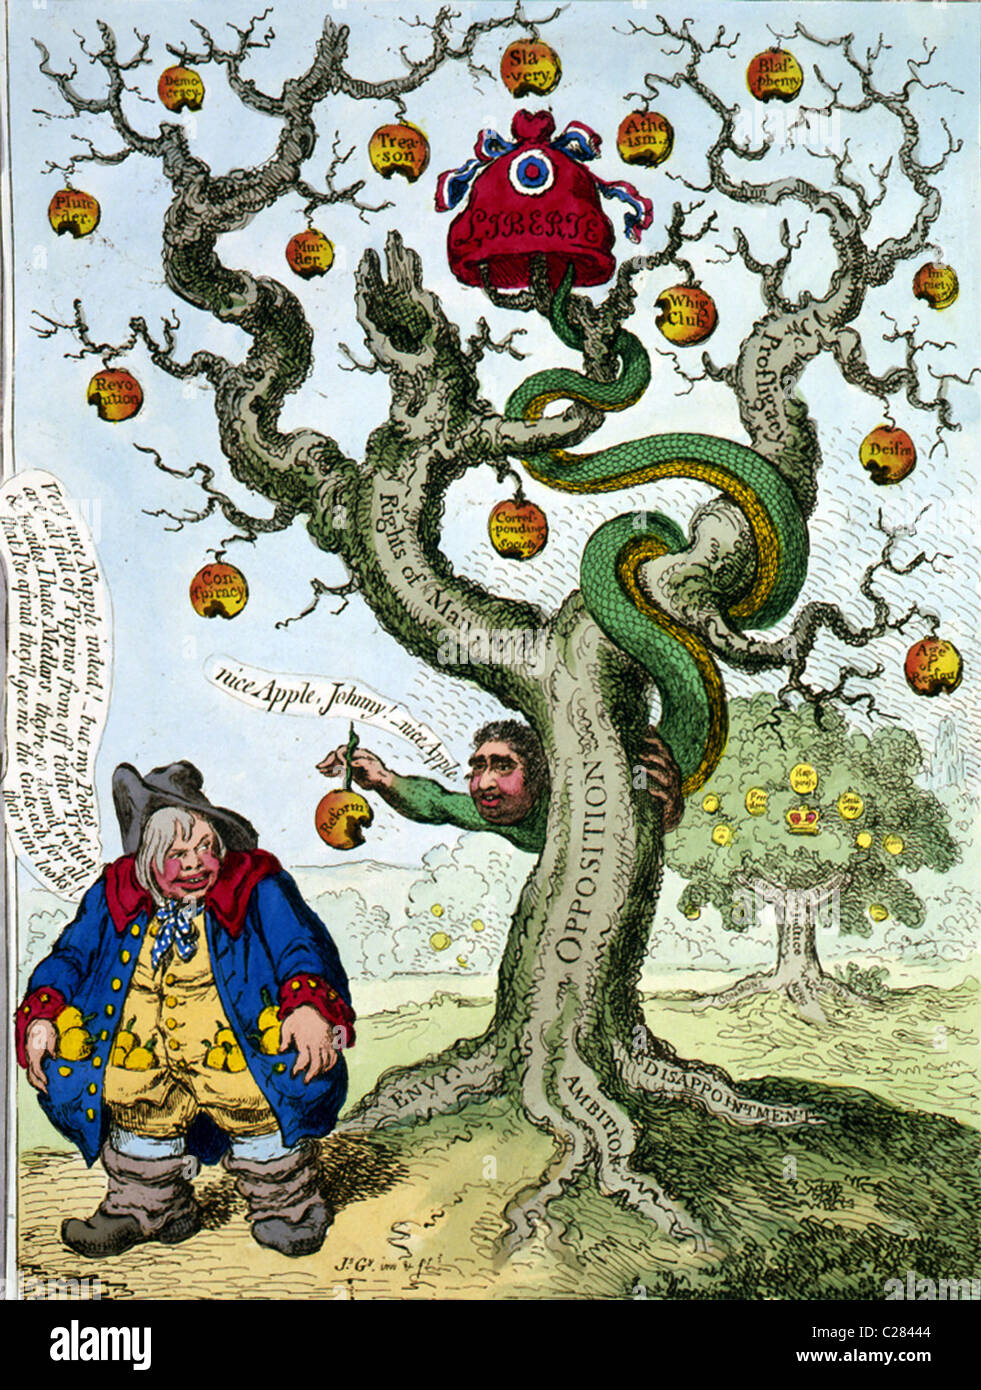 The tree of liberty with the devil tempting John Bull. - Stock Image